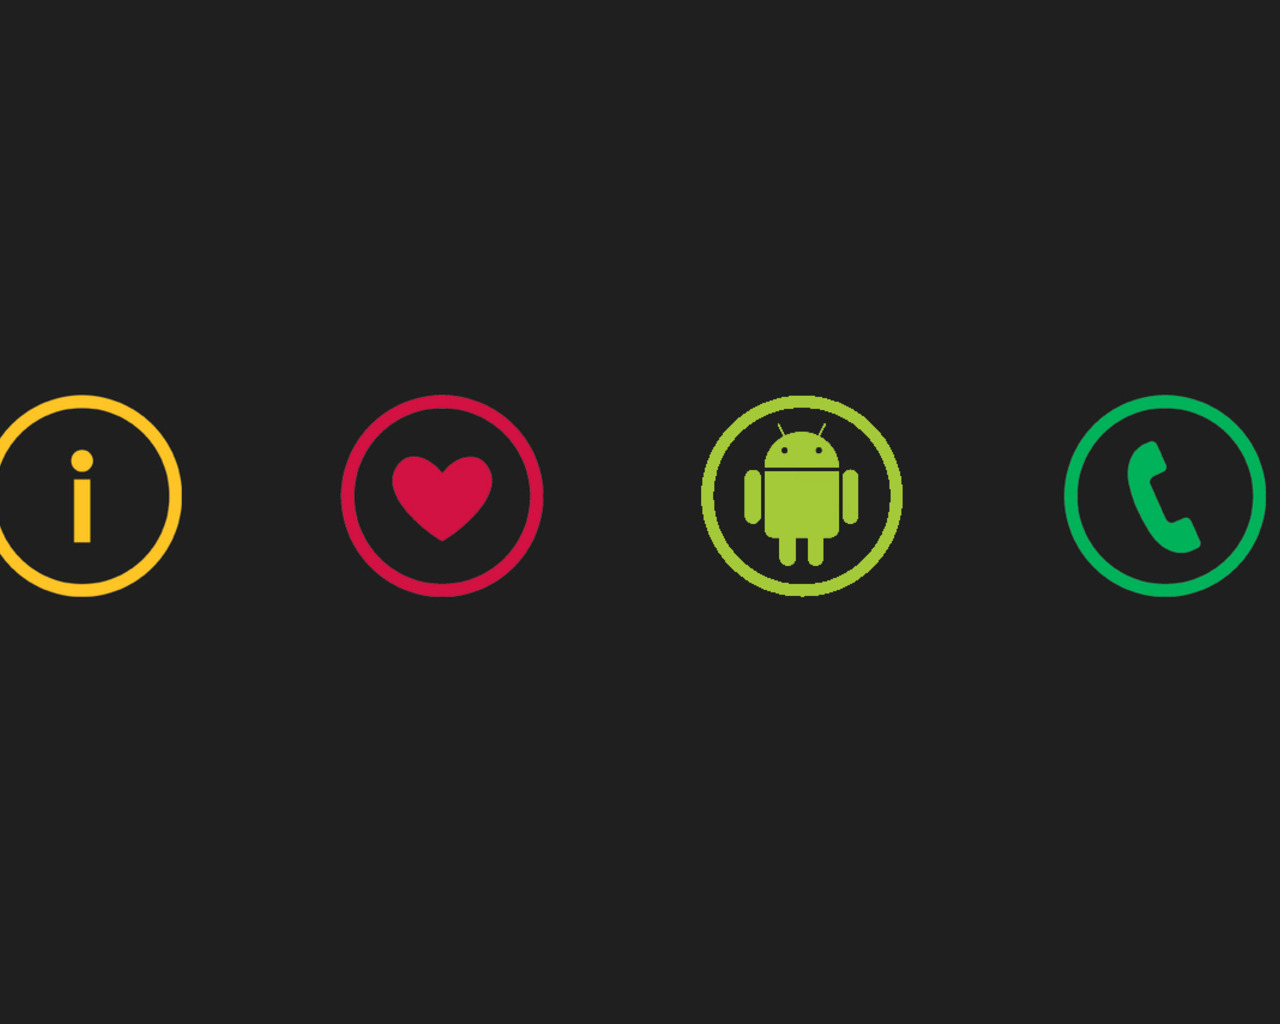 i-love-android-phone-image.jpg